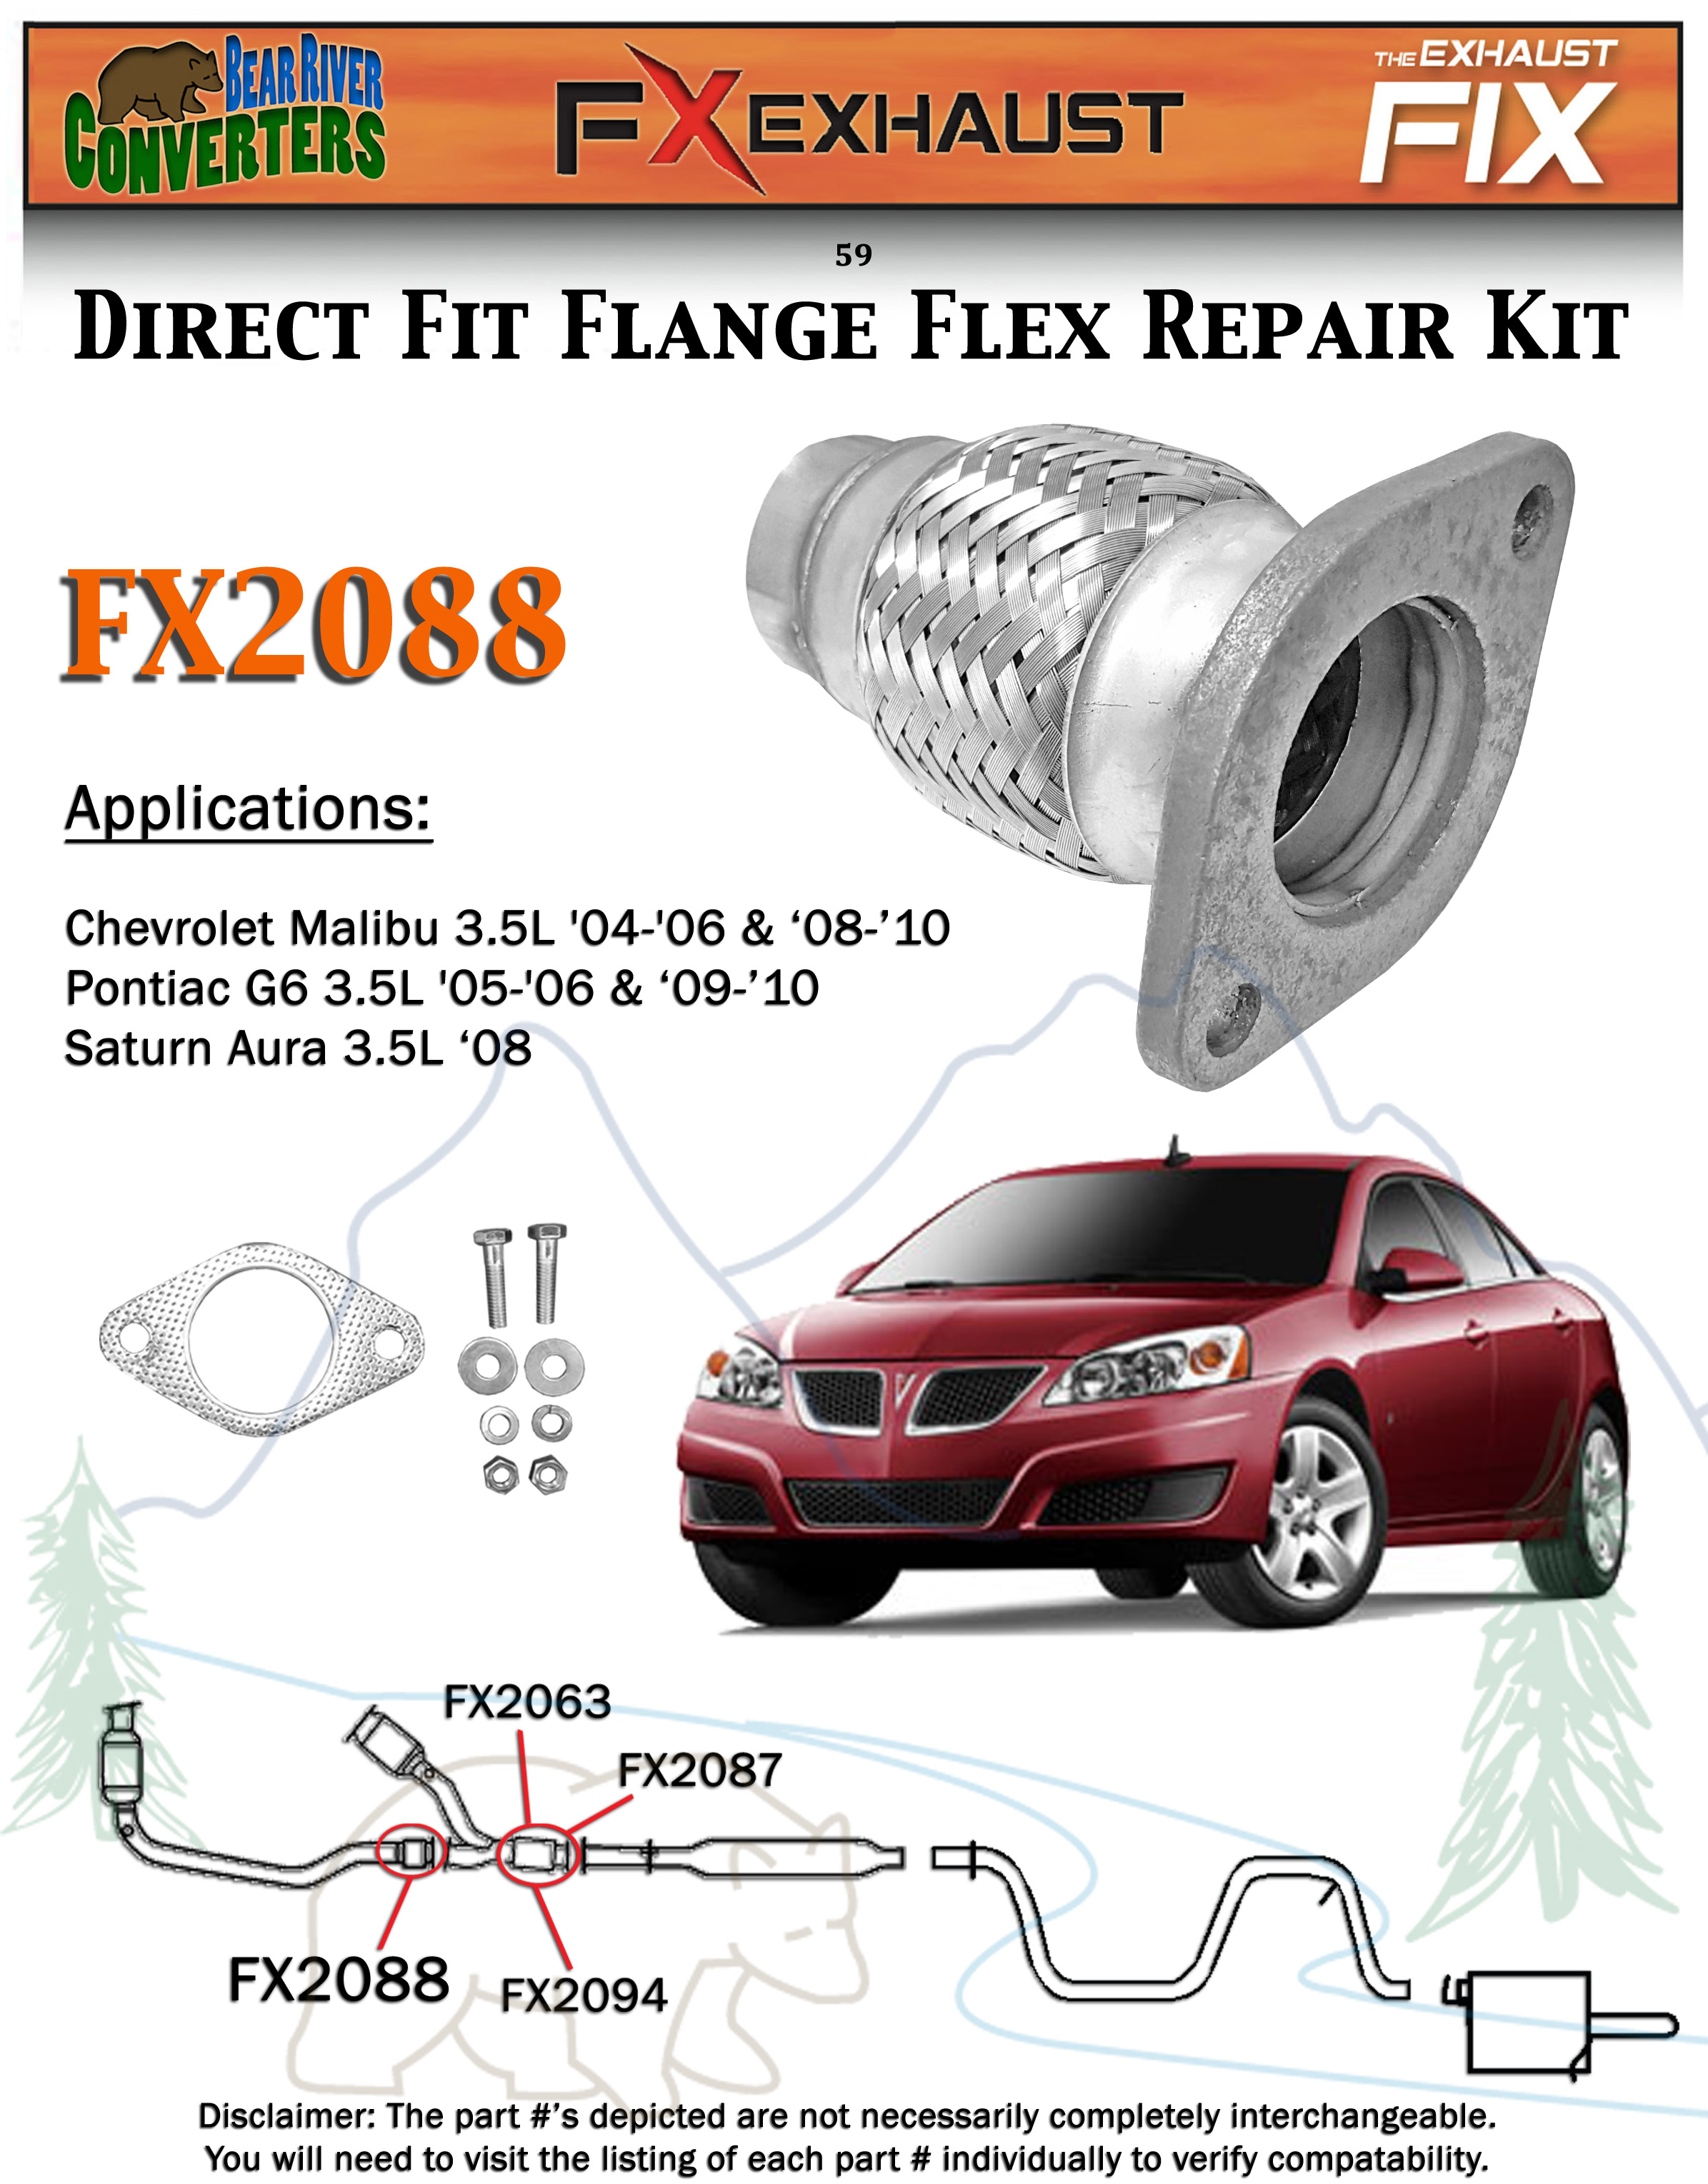 FX2088 Semi Direct Fit Exhaust Flange Repair Flex Pipe Replacement